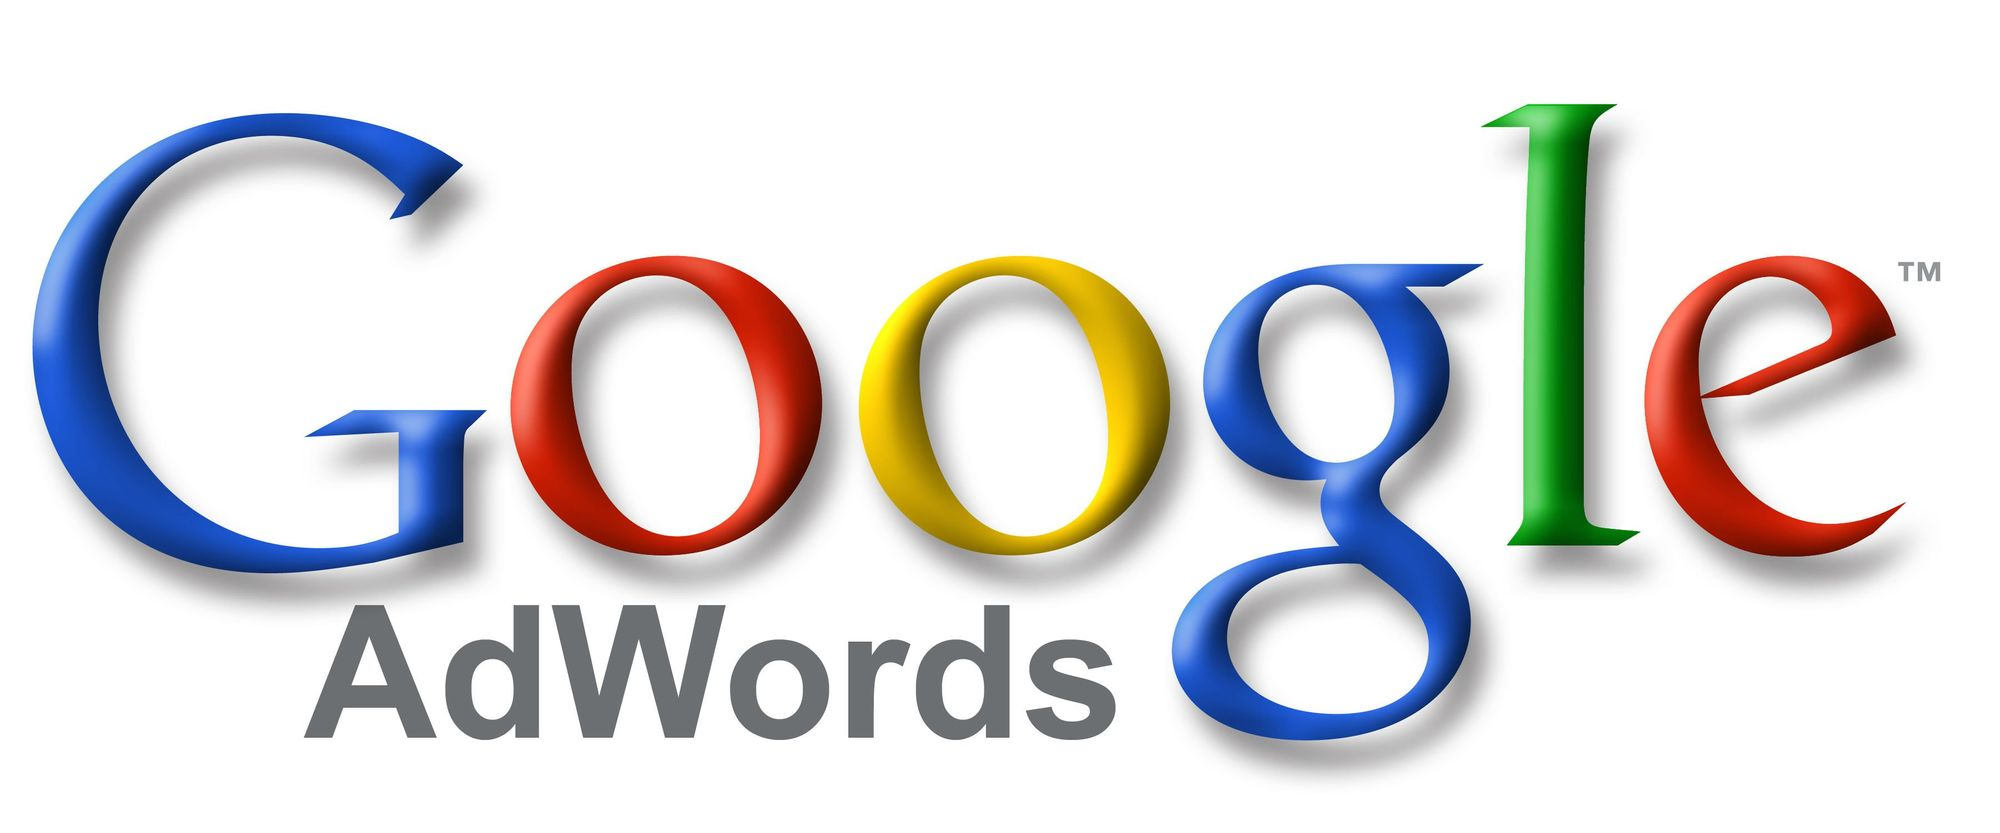 Google AdWords: Augmentation des limites des comptes